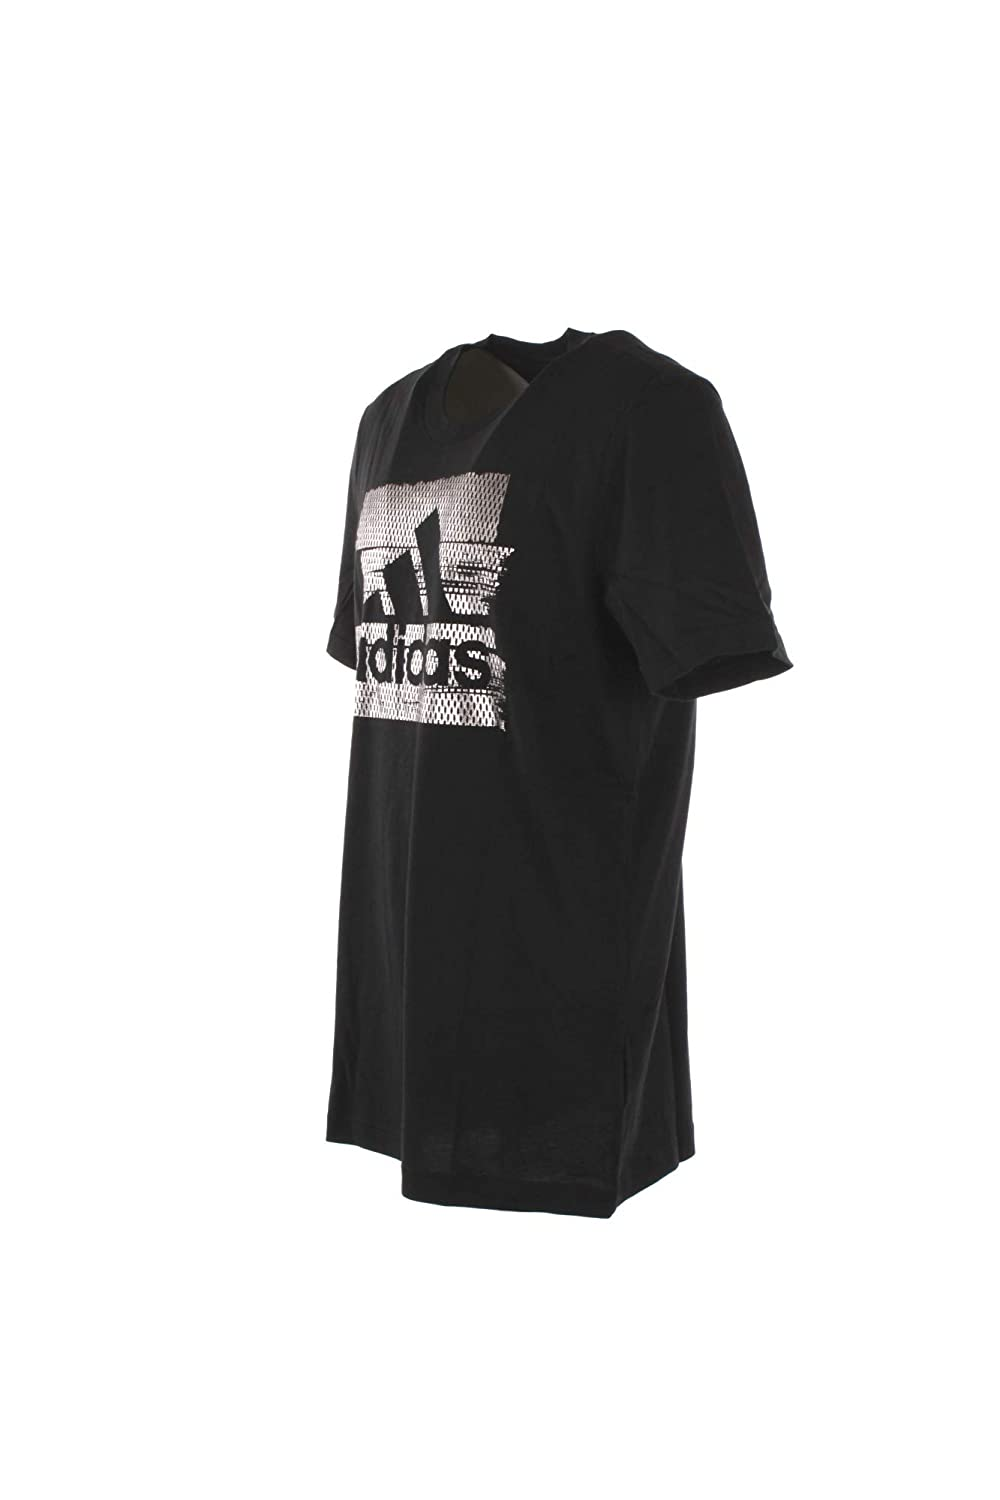 adidas Mh Bos Foil T Camiseta Hombre